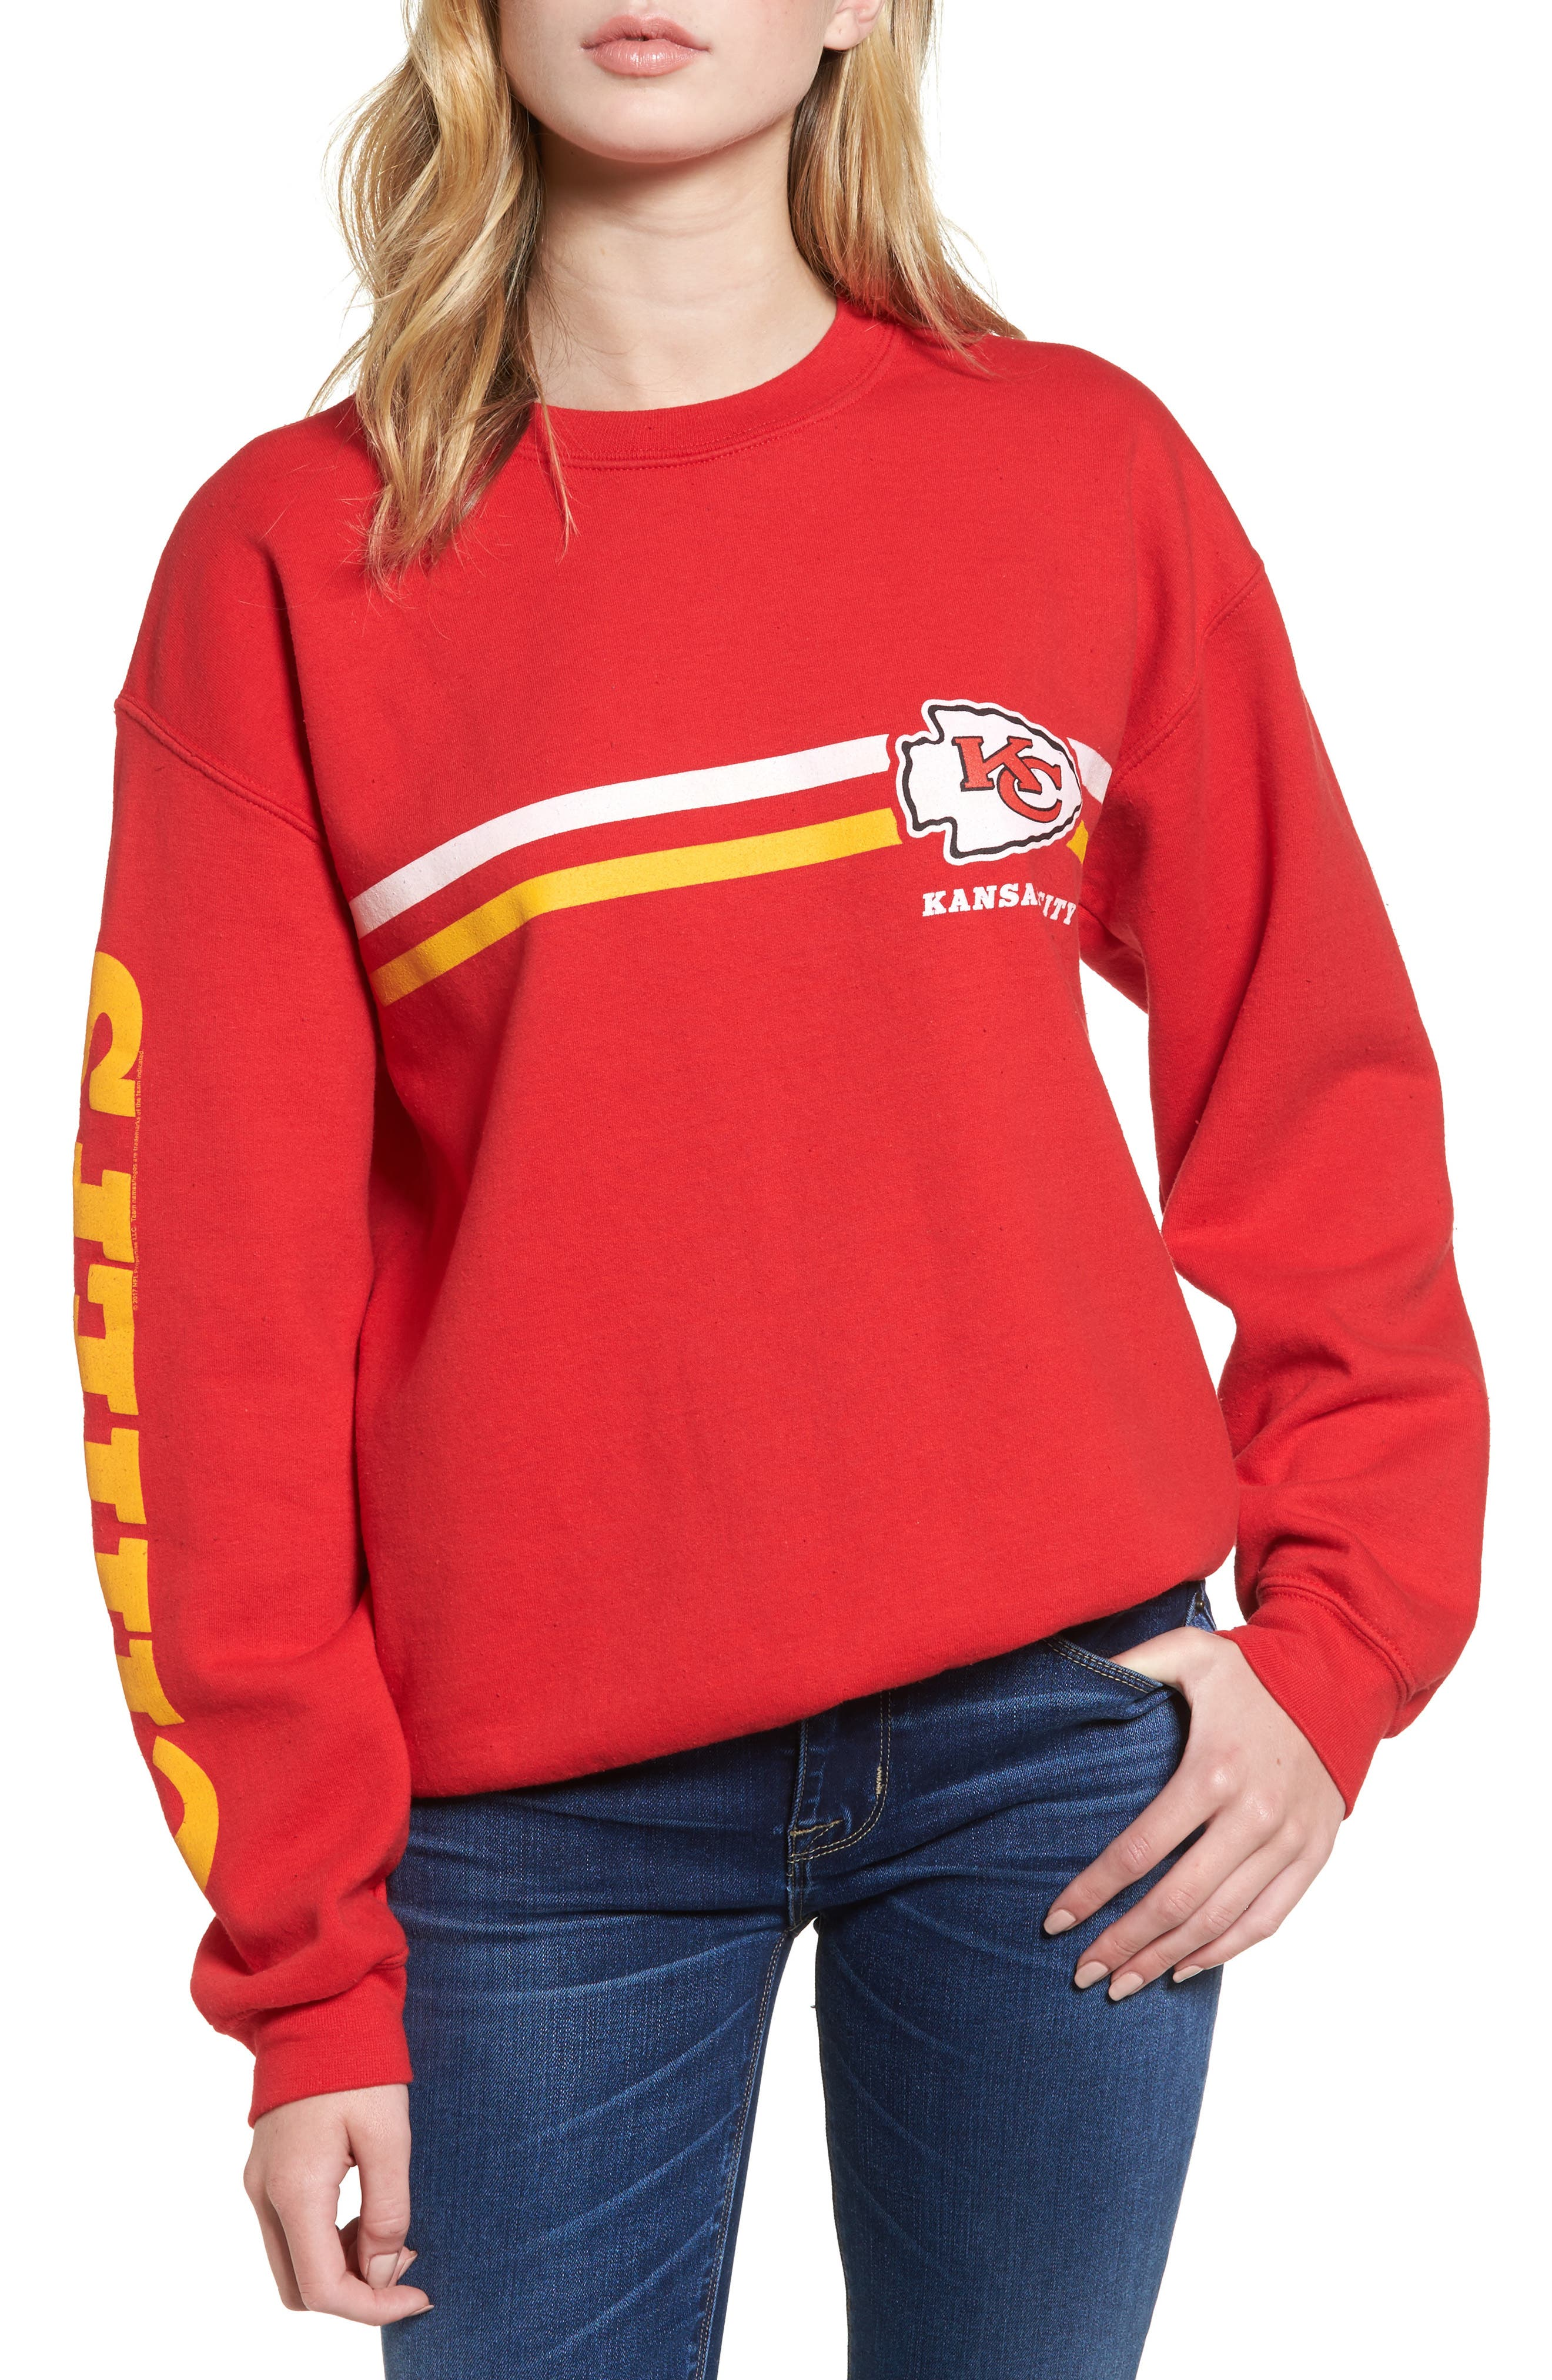 Junk Food Retro NFL Team Sweatshirt